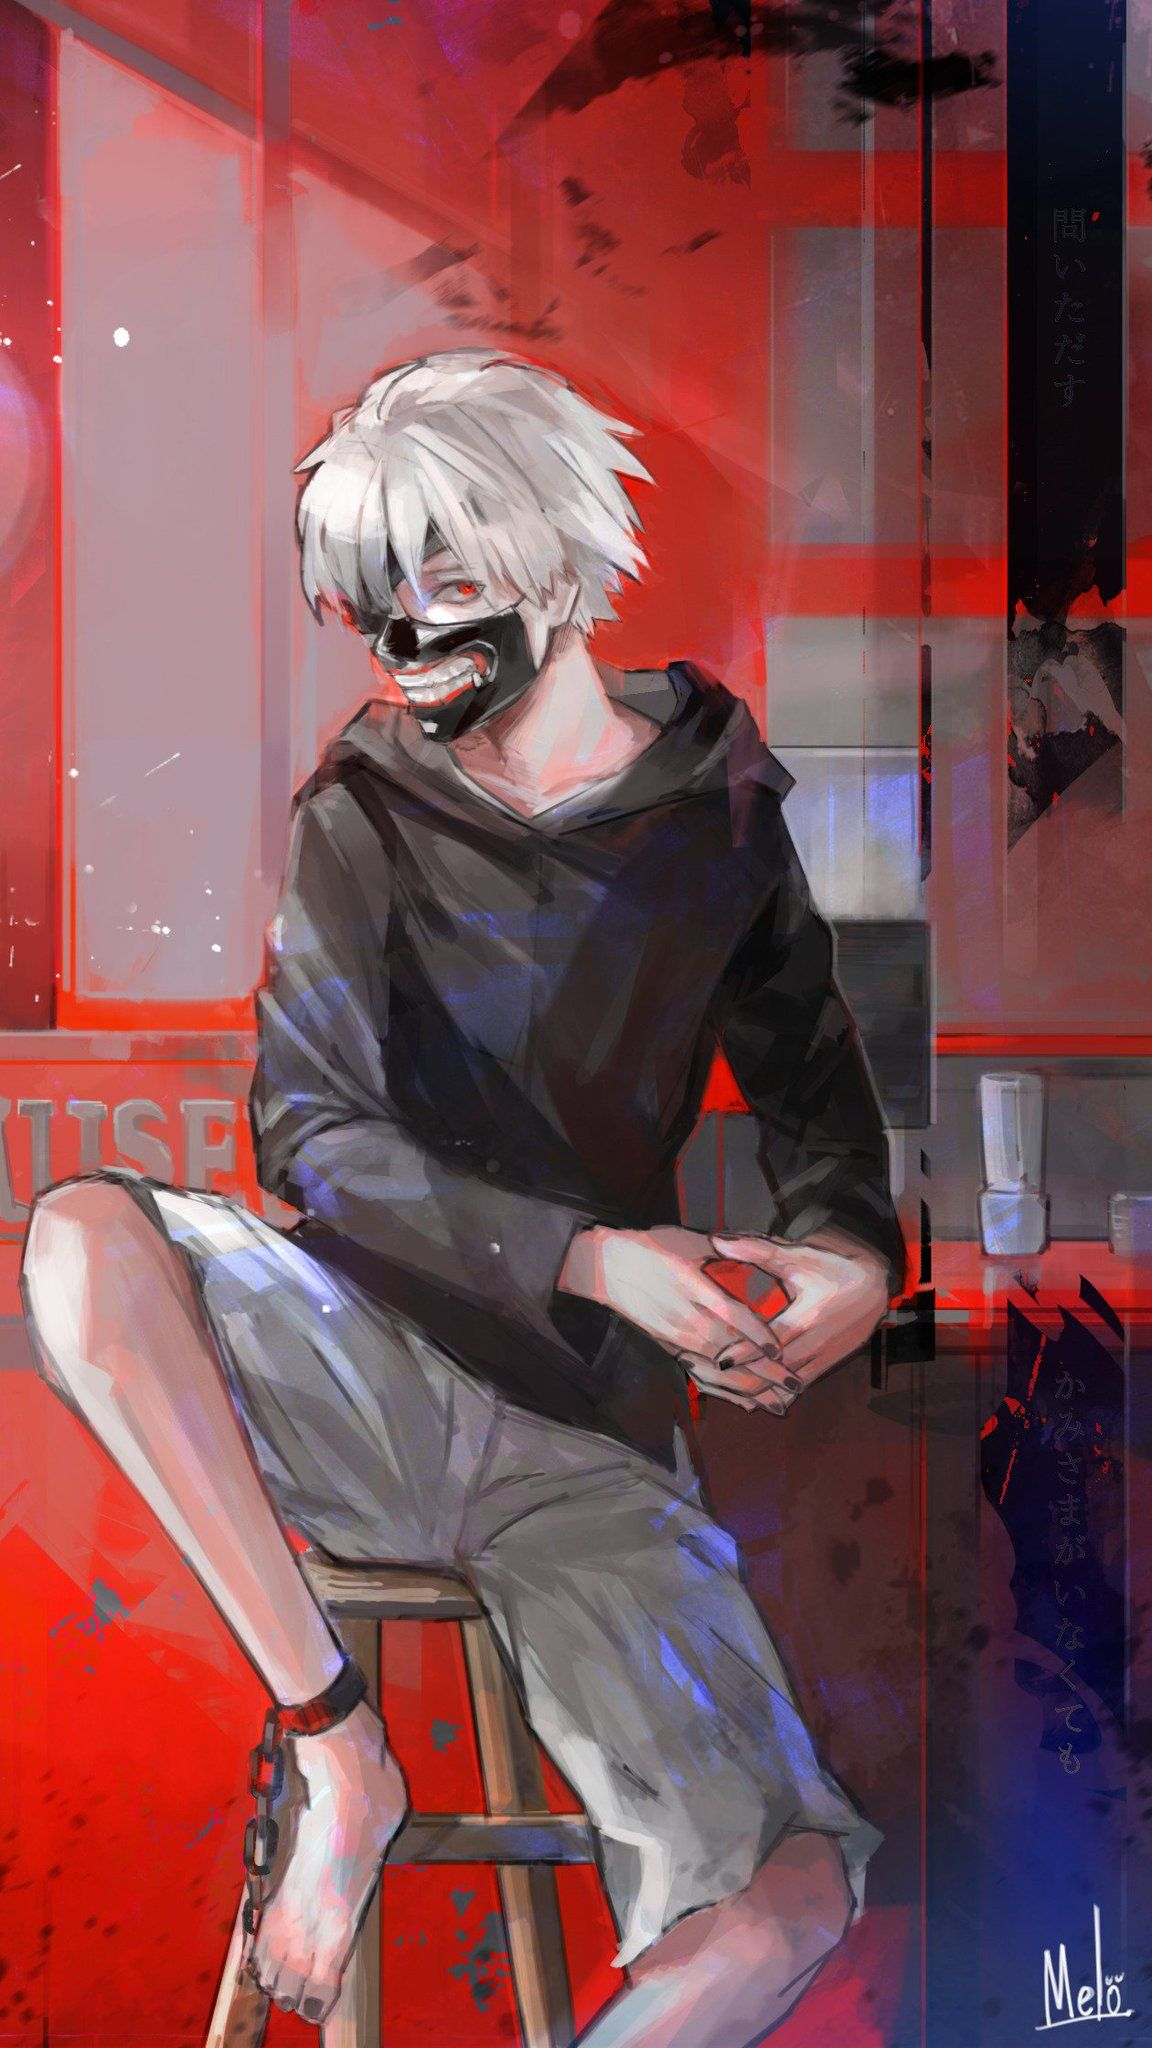 Pin by ANVG on Tokyo ghoul in 2020 Tokyo ghoul anime